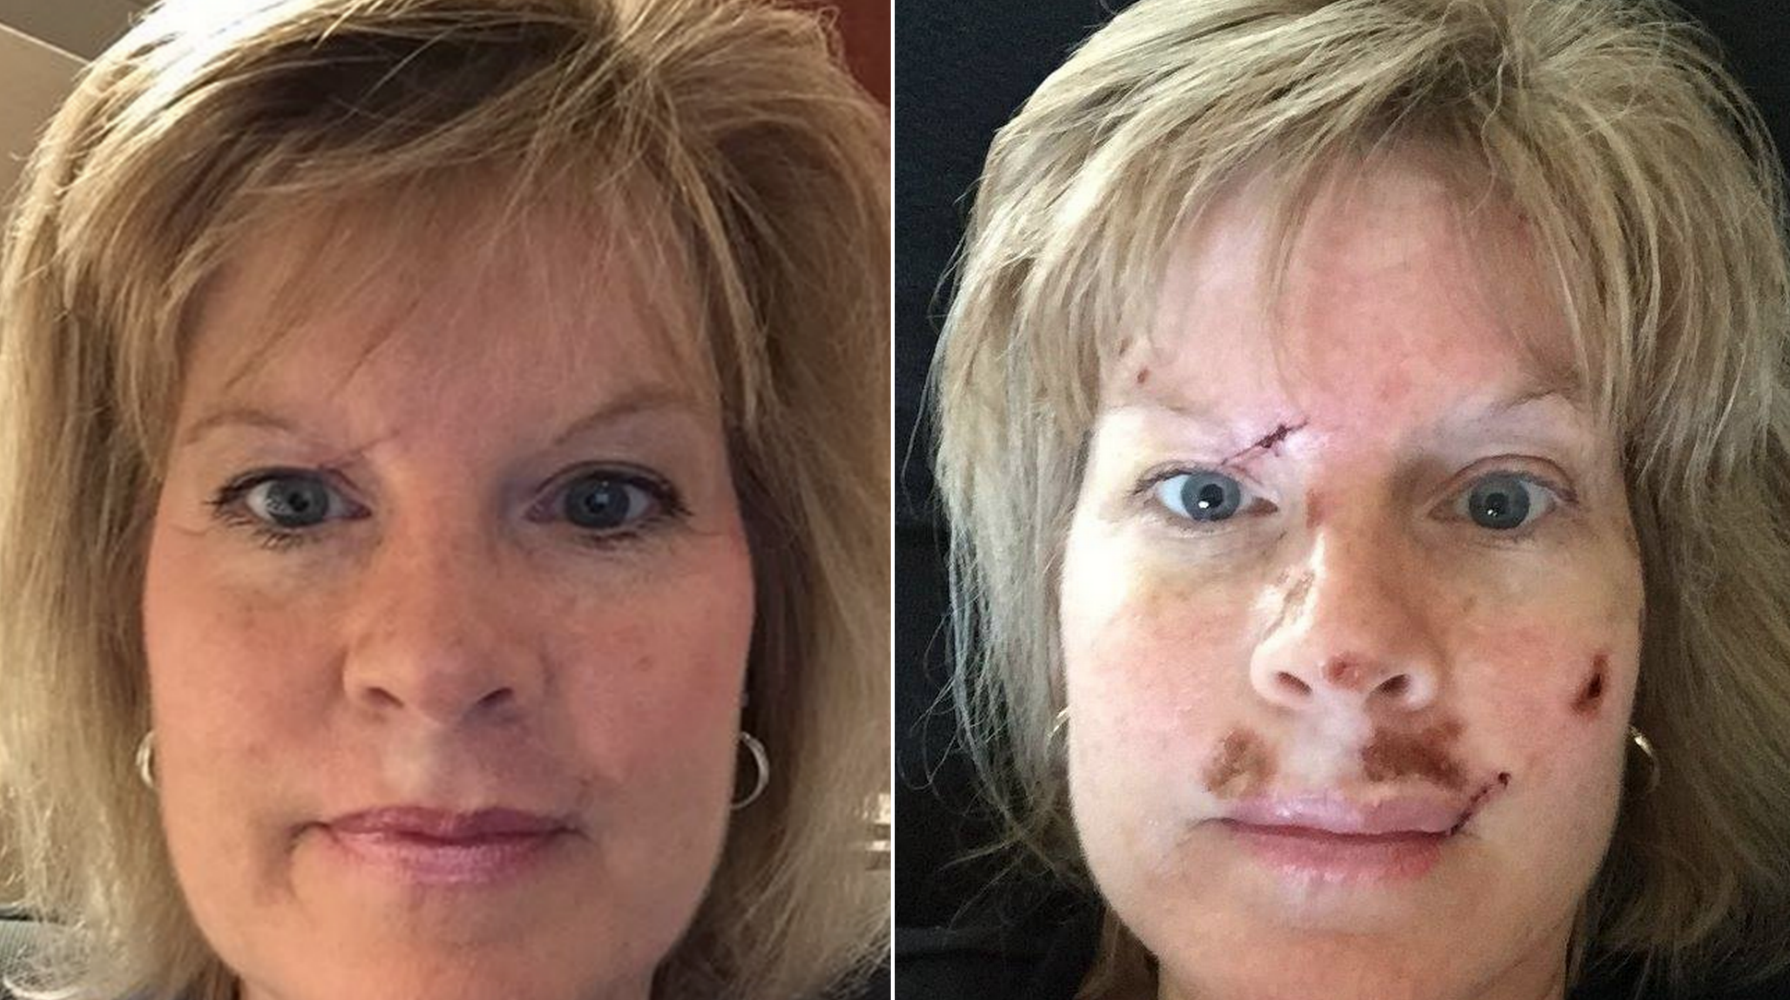 Woman Shares Graphic Images To Spread Skin Cancer Warning Cbs News